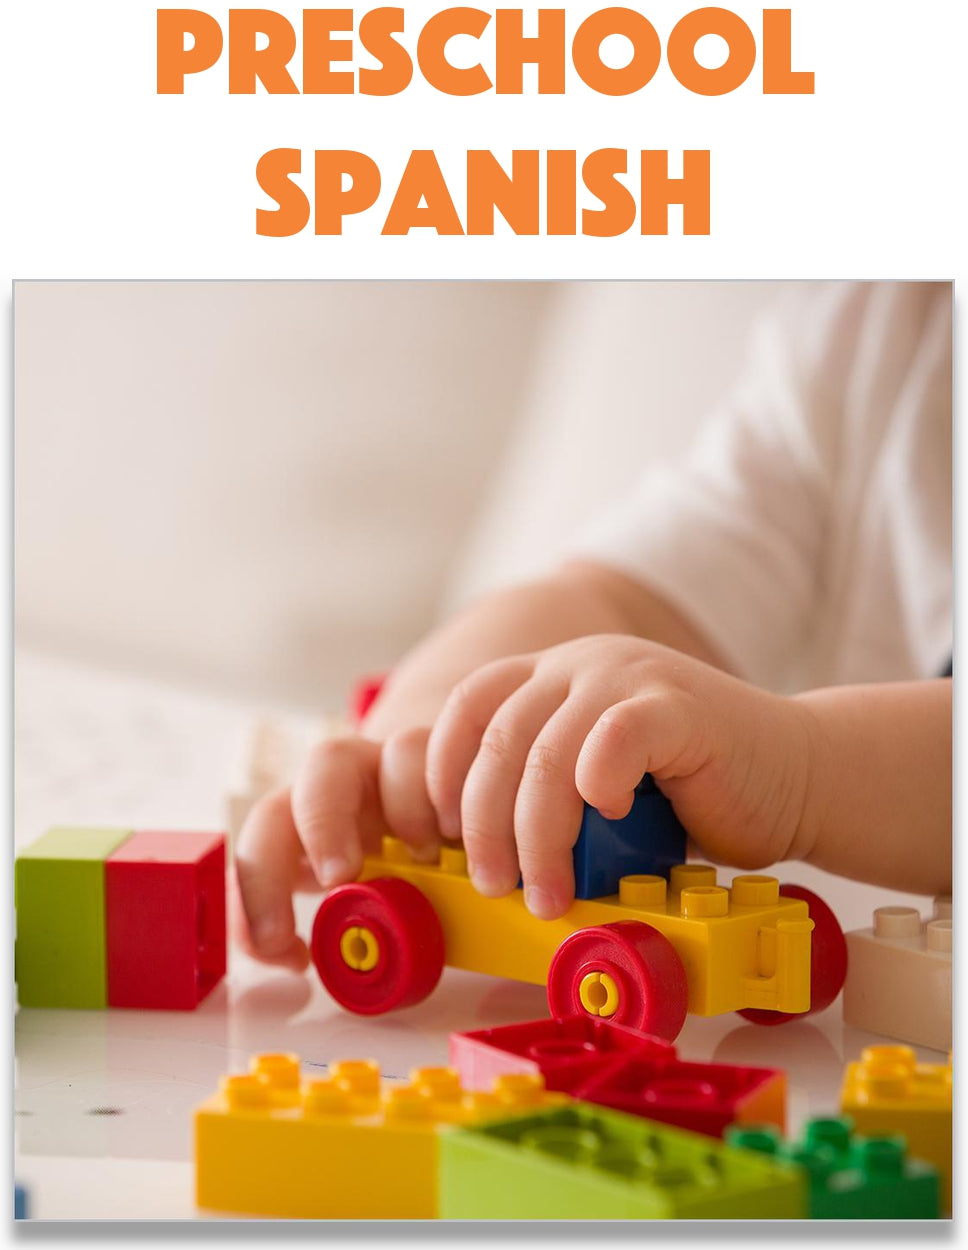 Preschool Spanish Books